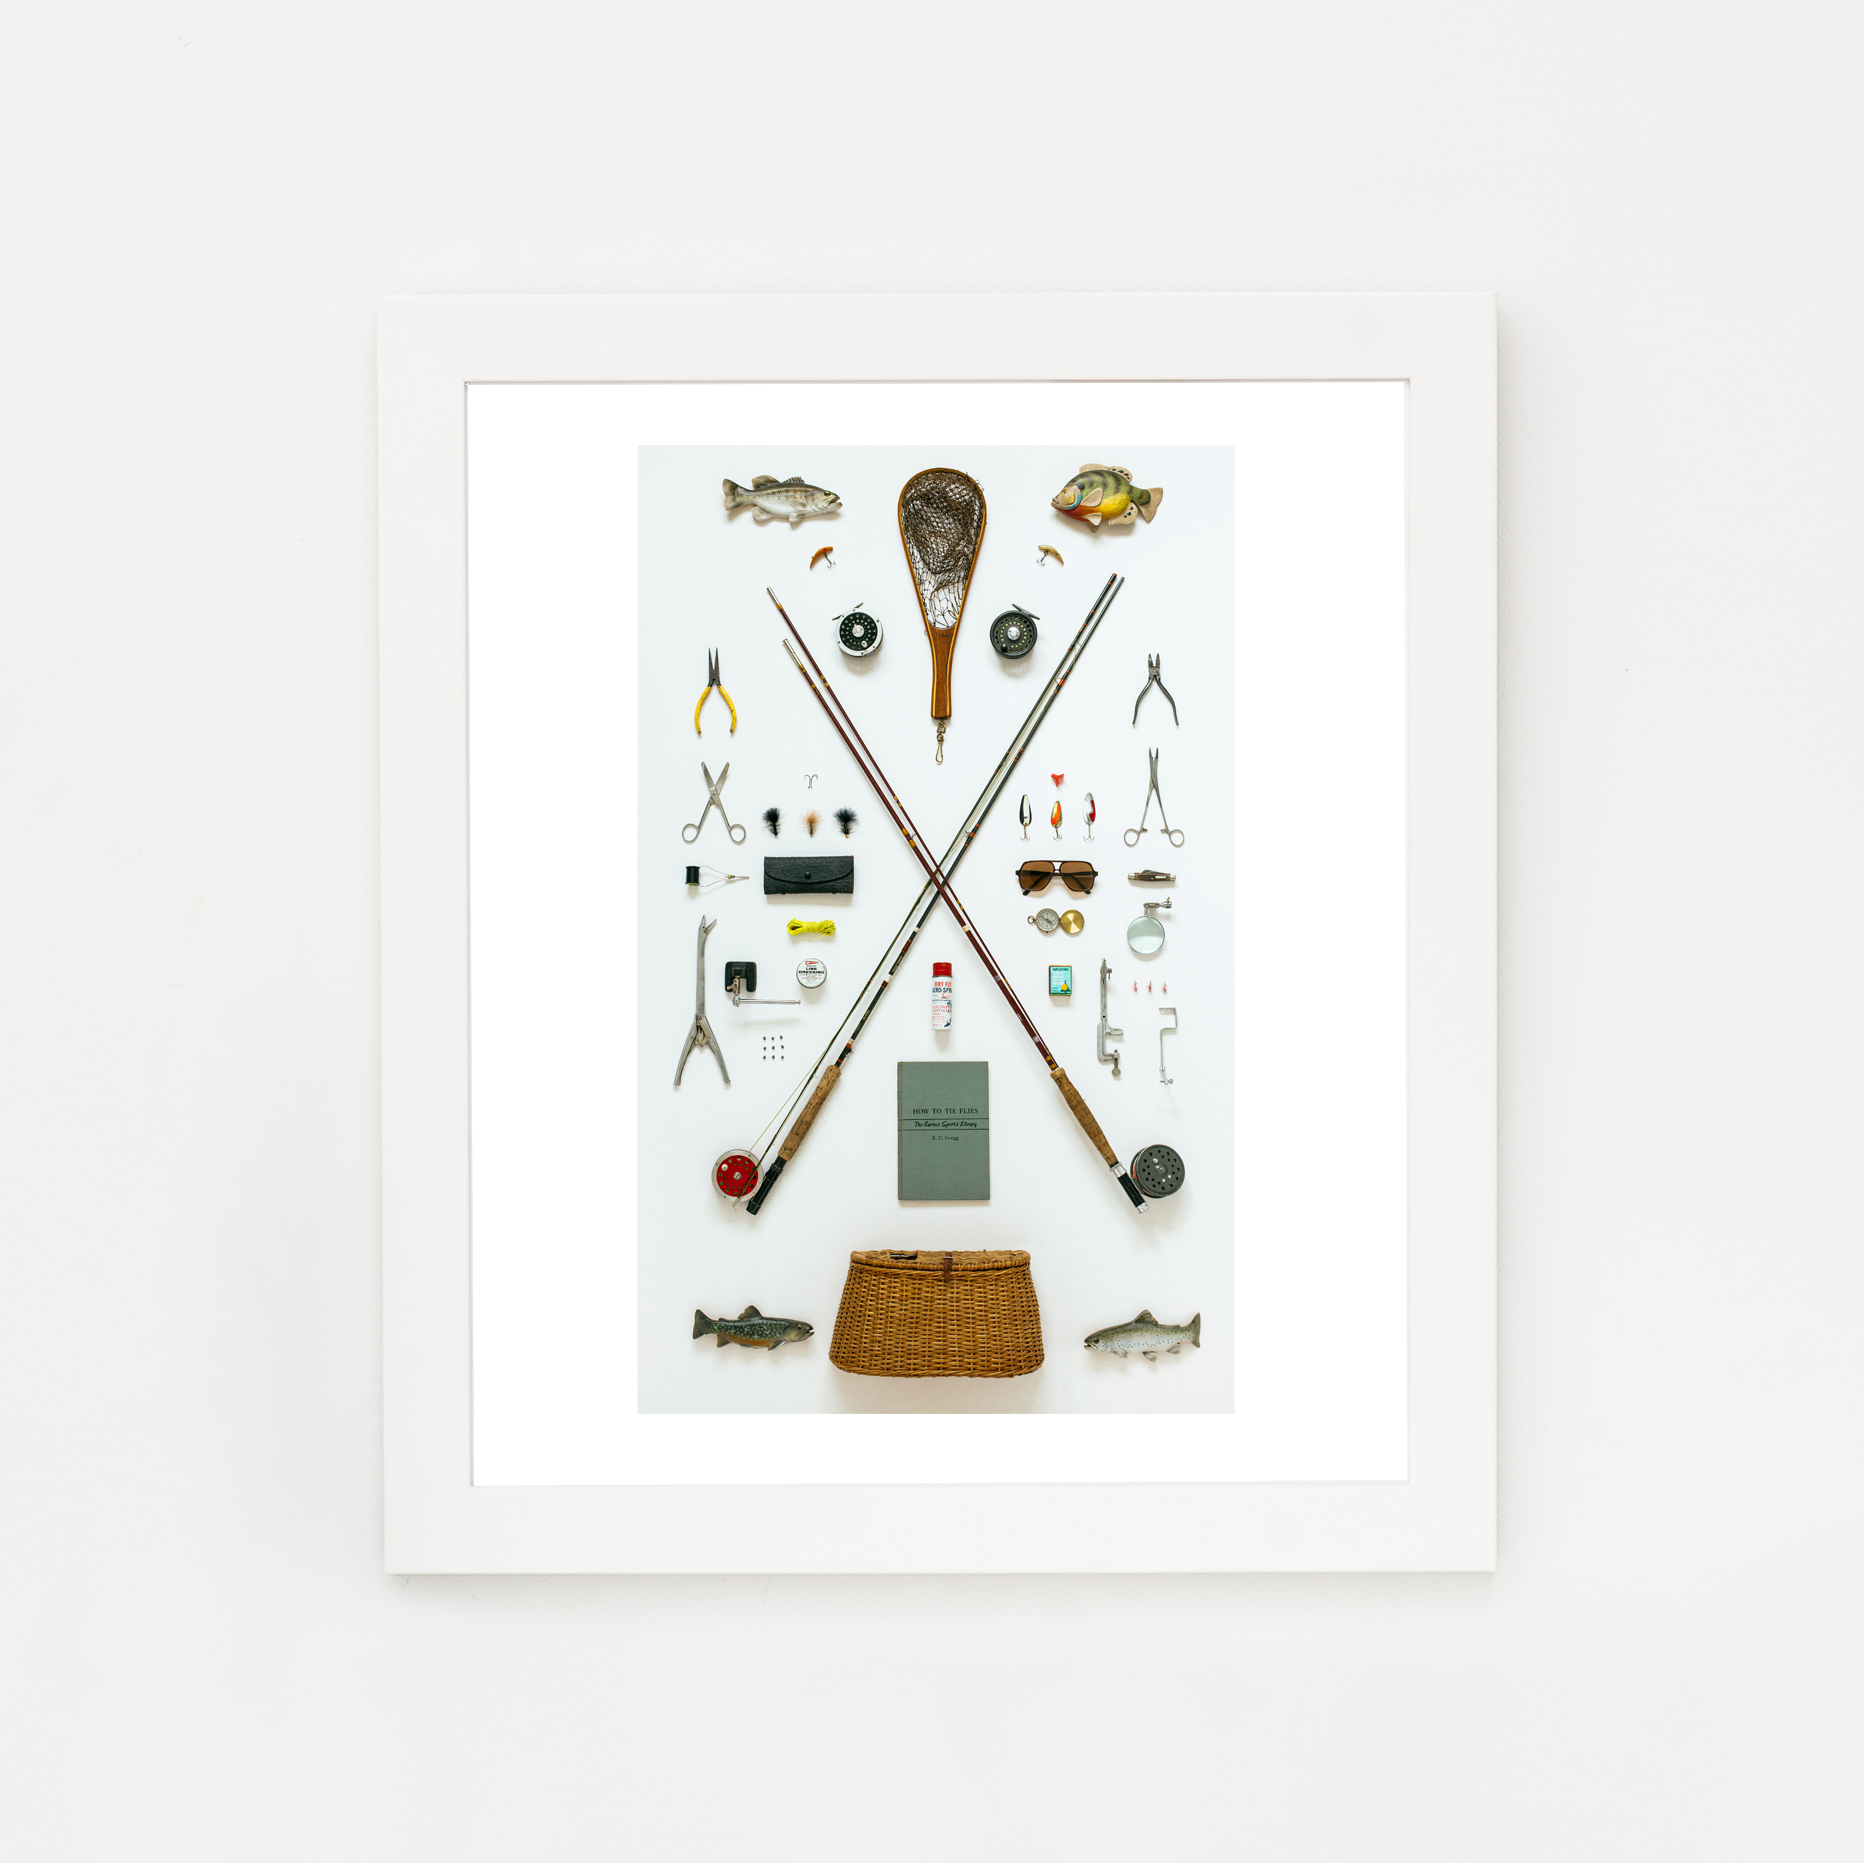 Fly-Fisherman-Art-Print_White-Frame.jpg